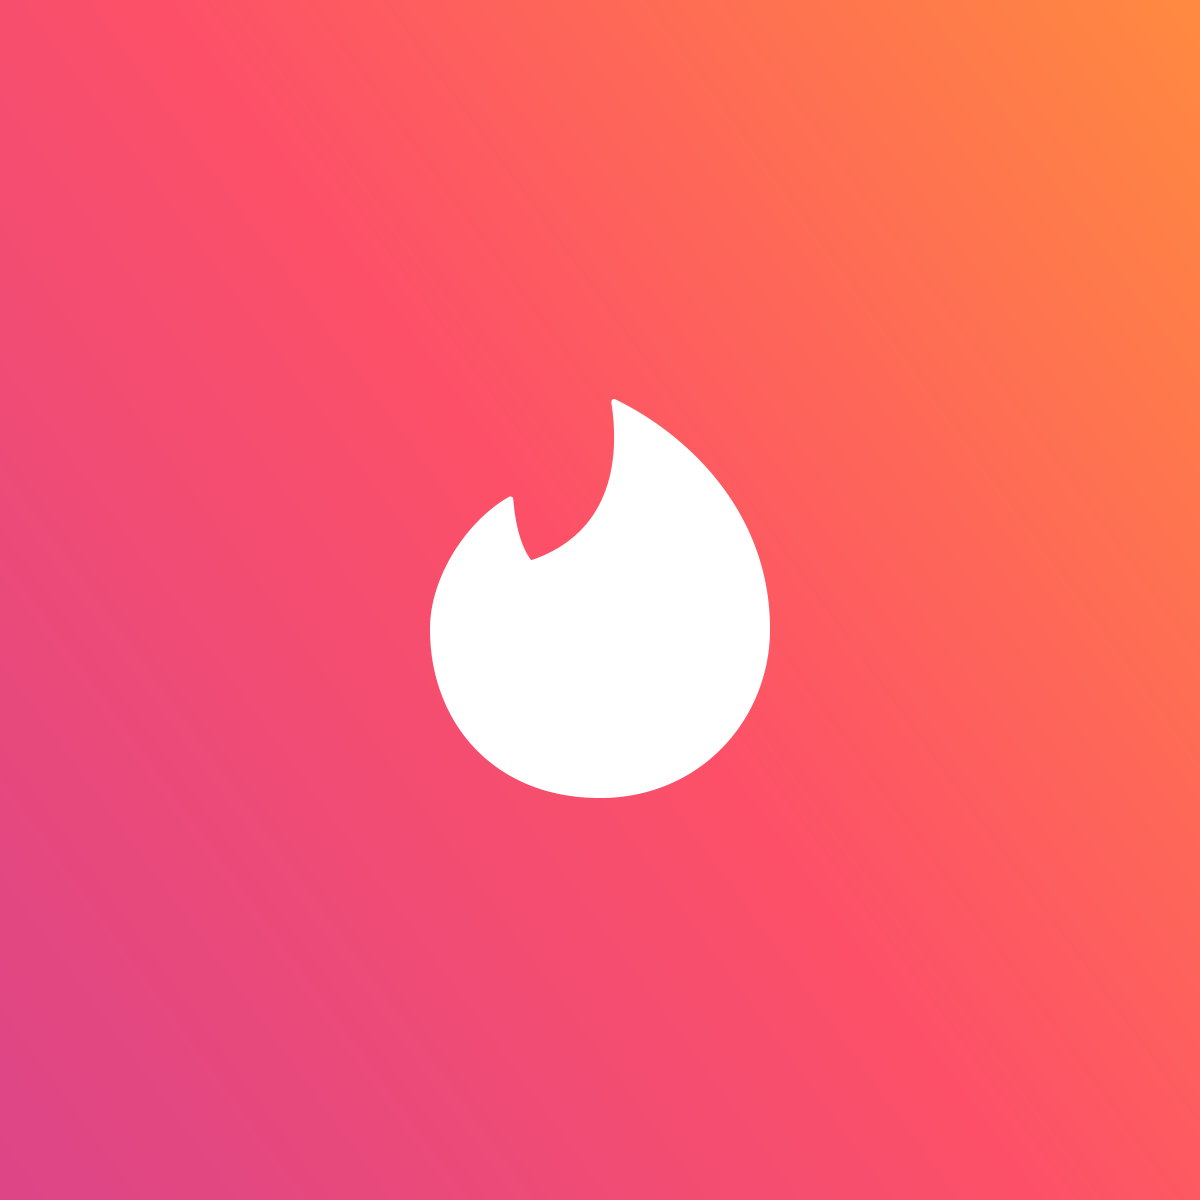 Logo do Tinder